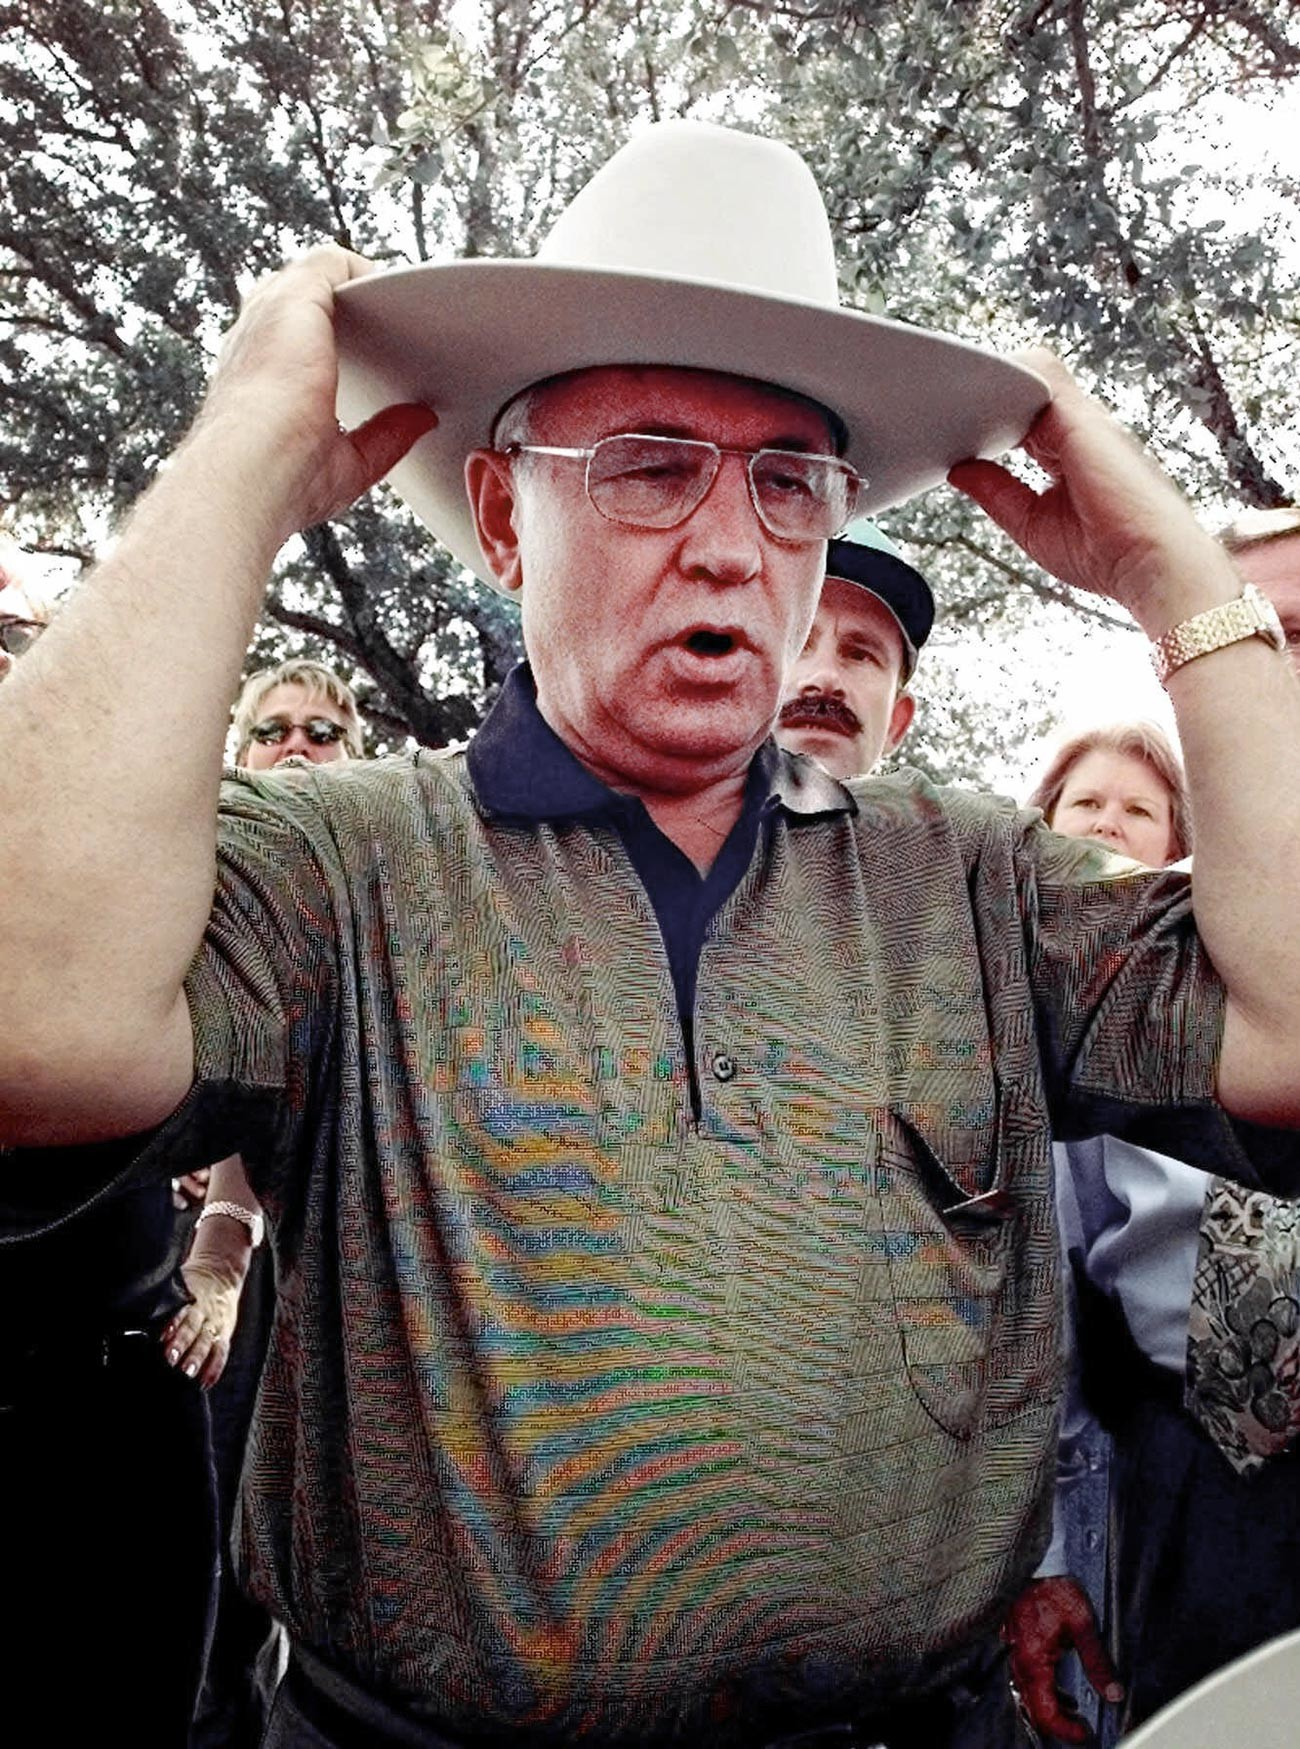 Former Soviet President Mikhail Gorbachev puts a cowboy hat on backwards during a visit to the State Fair of Texas in Dallas, 1998